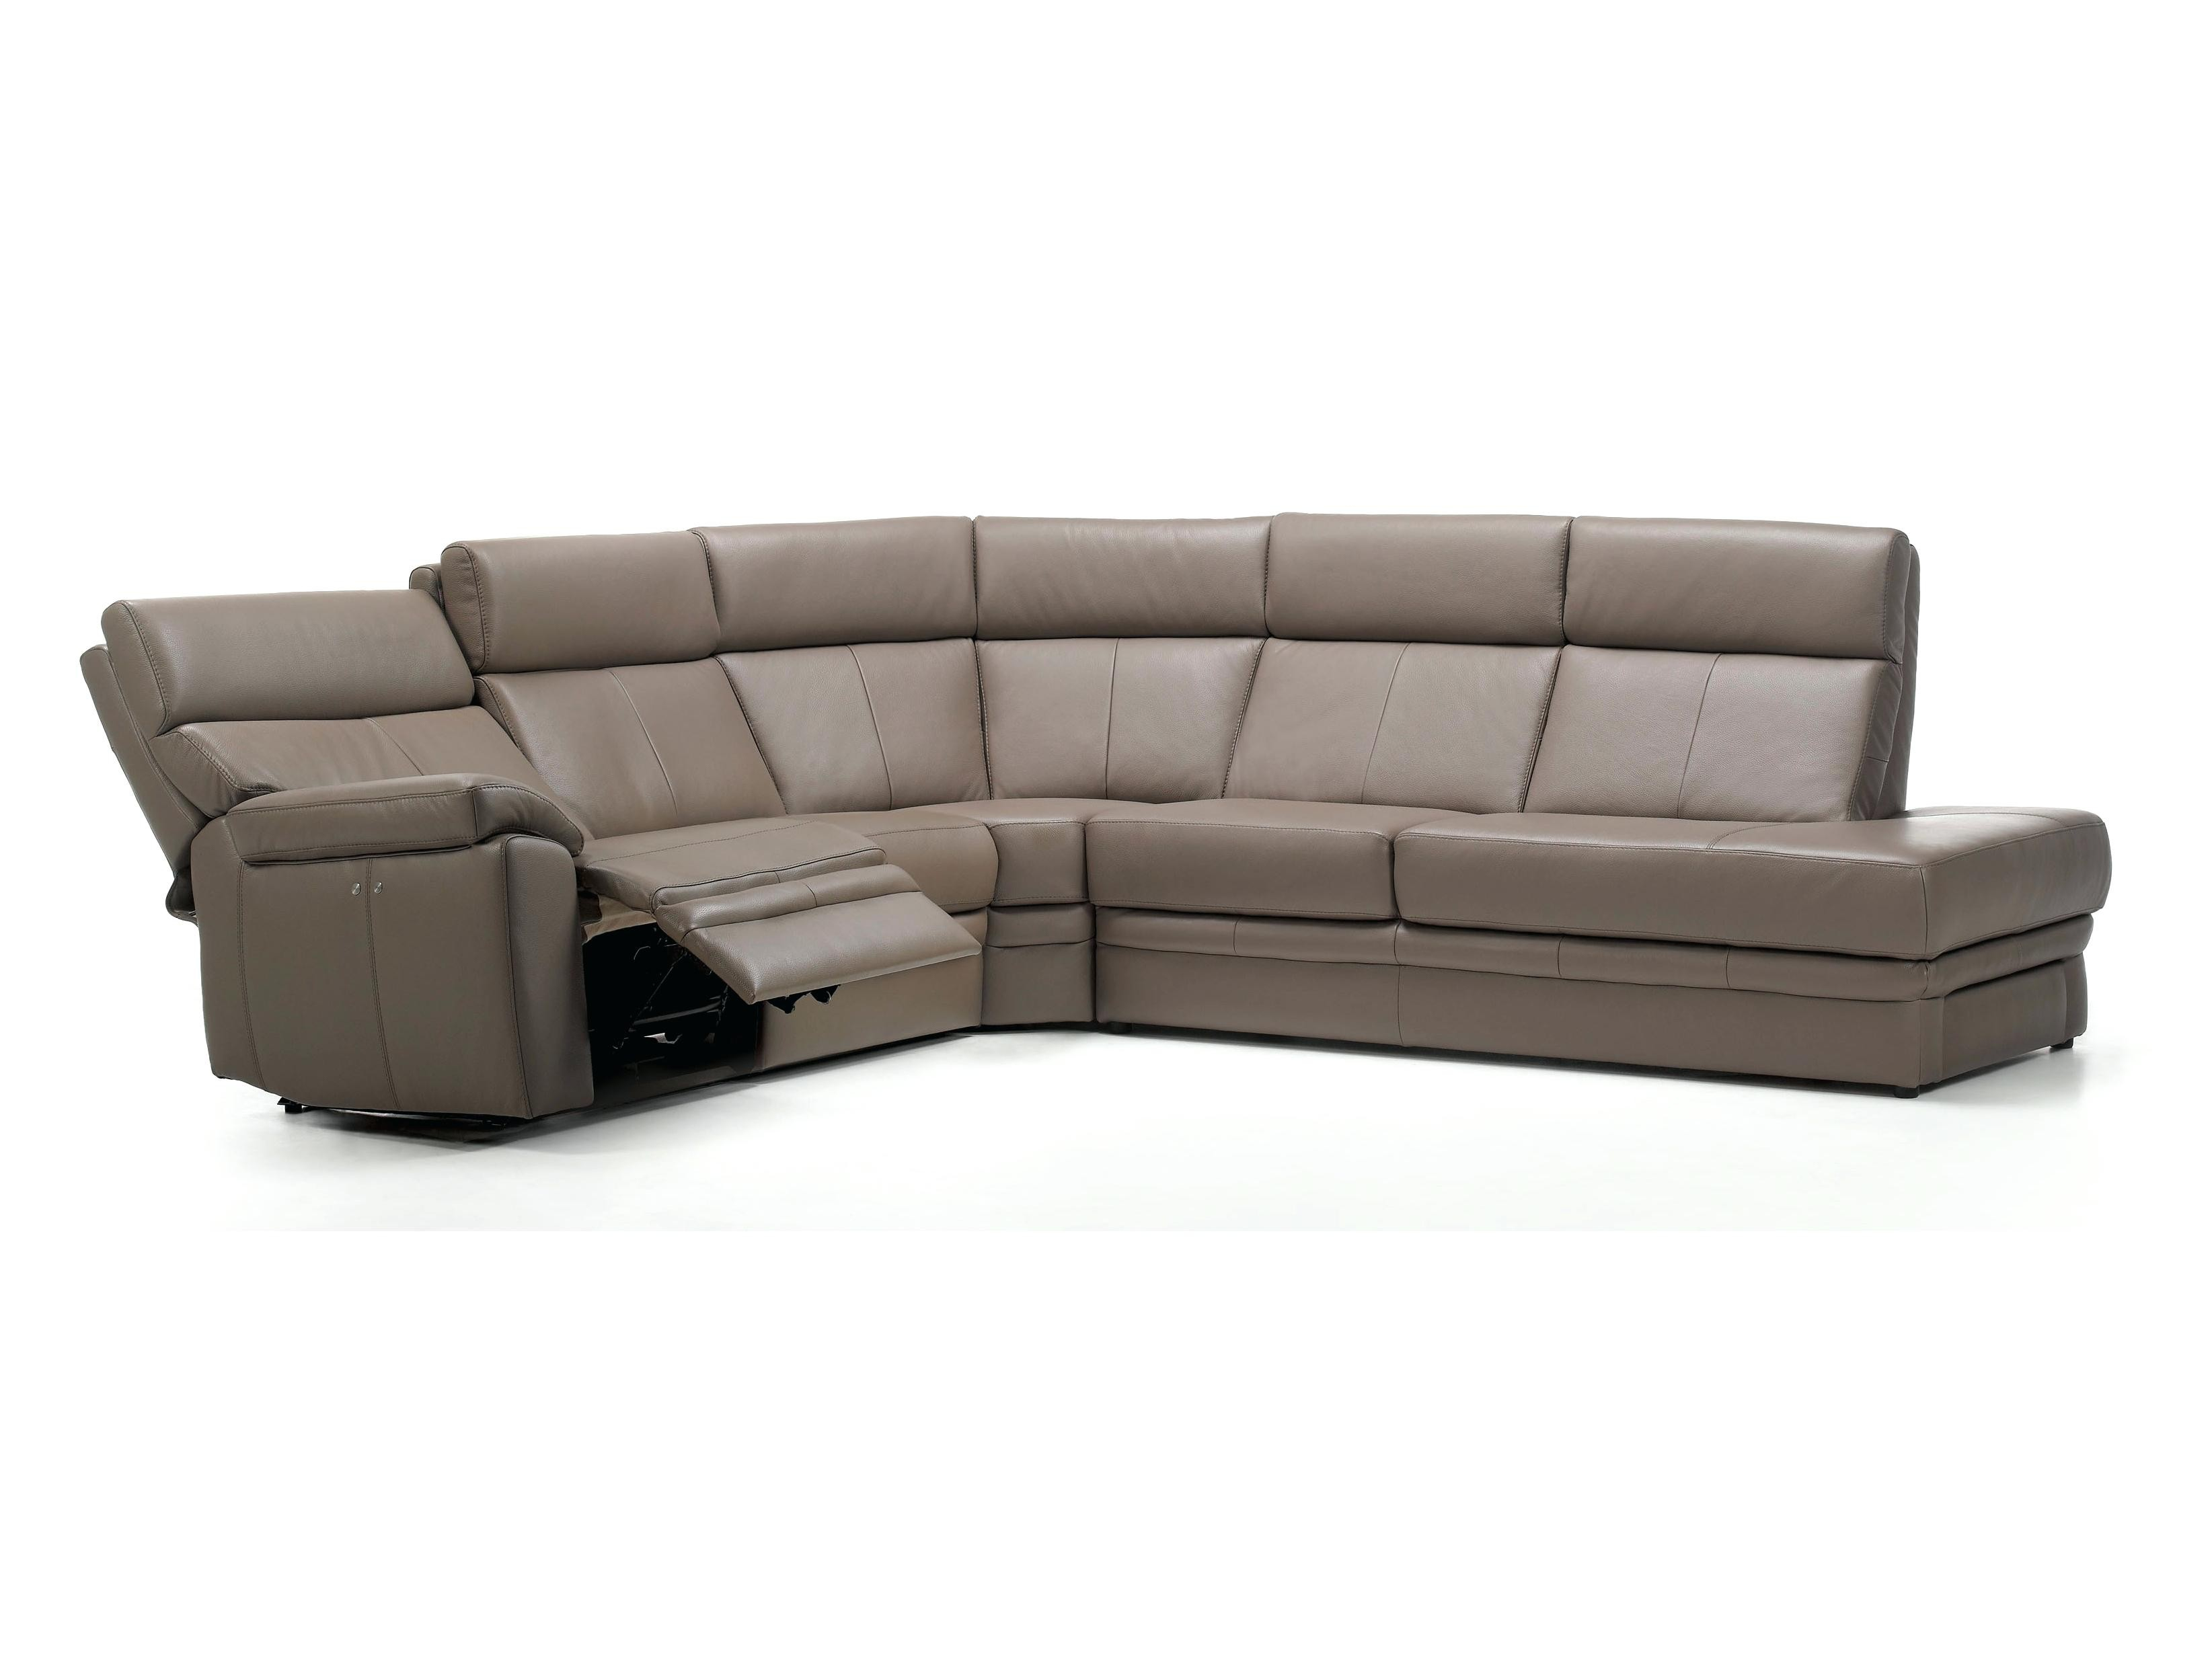 Canapé Relax Conforama Inspirant Collection 33 New Canape Relax Pas Cher